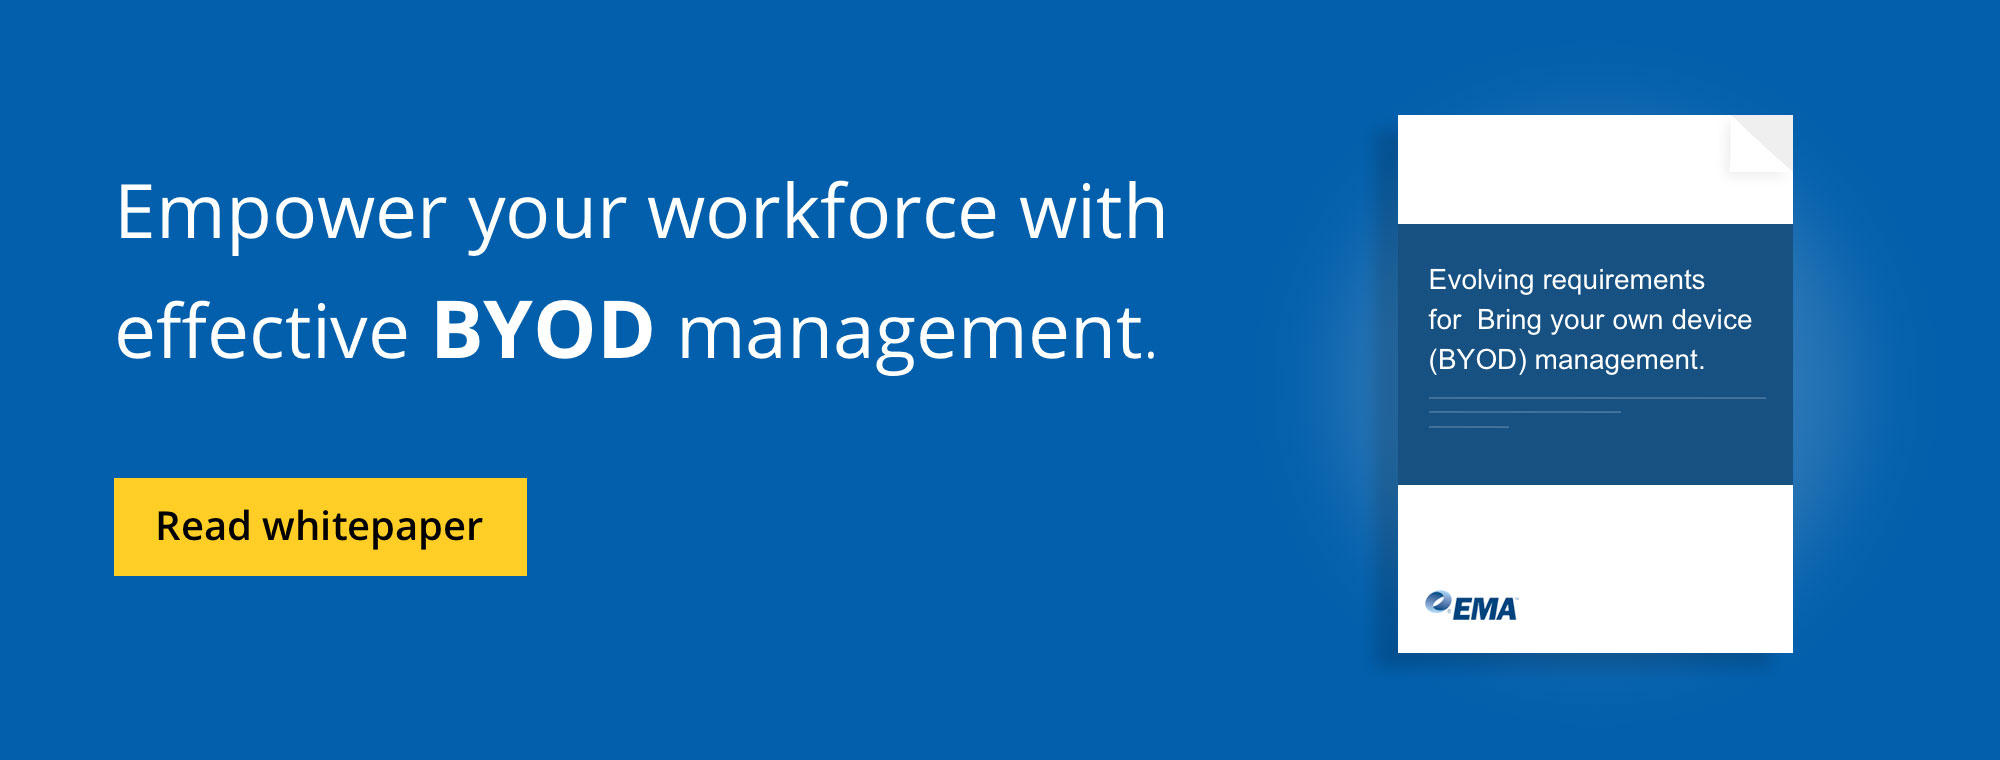 Empower your workforce with effective Bring your own device (BYOD) management.